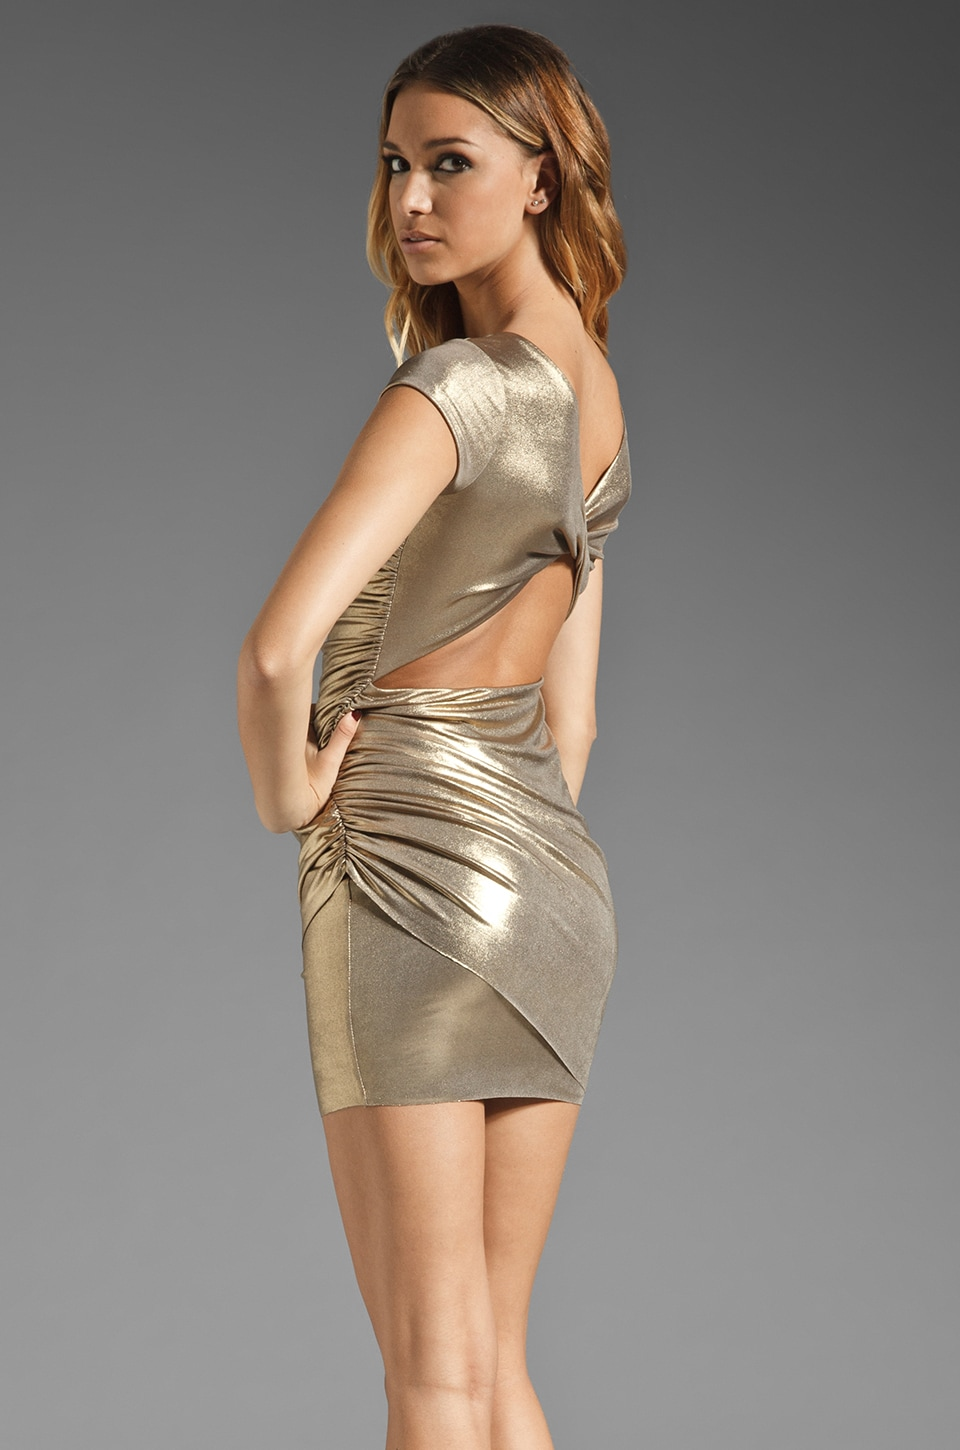 Bailey 44 Iron Maiden Dress in Gold